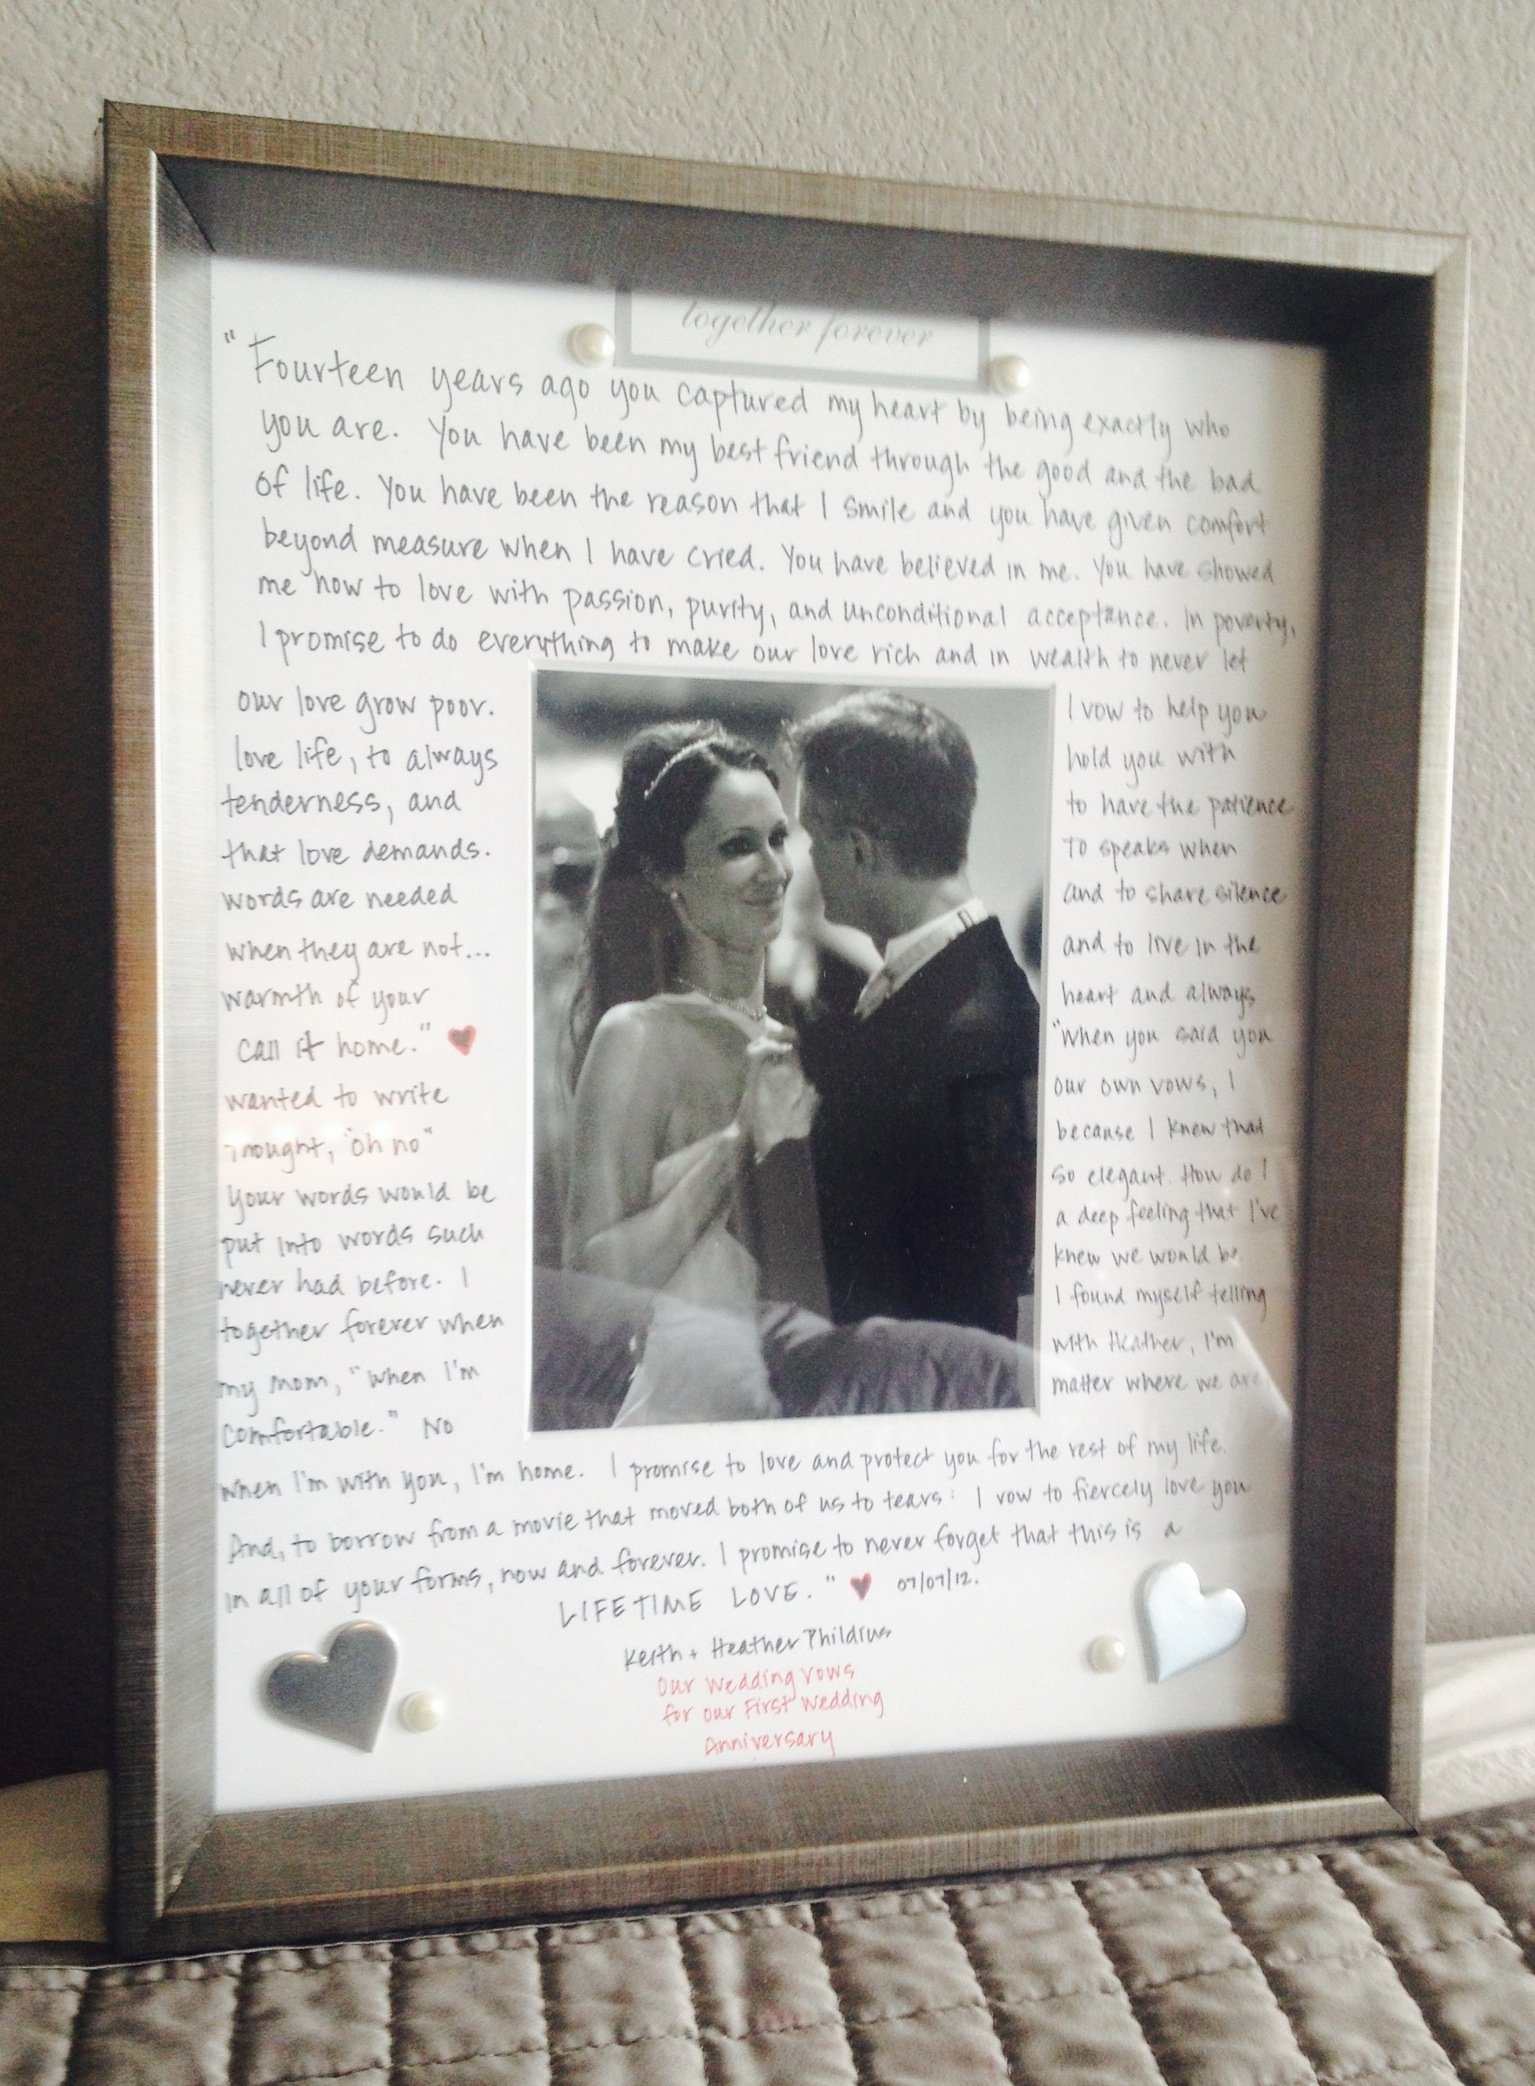 10 Stunning First Anniversary Gift Ideas For Him beautiful third wedding anniversary gift ideas for husband pictures 3 2021